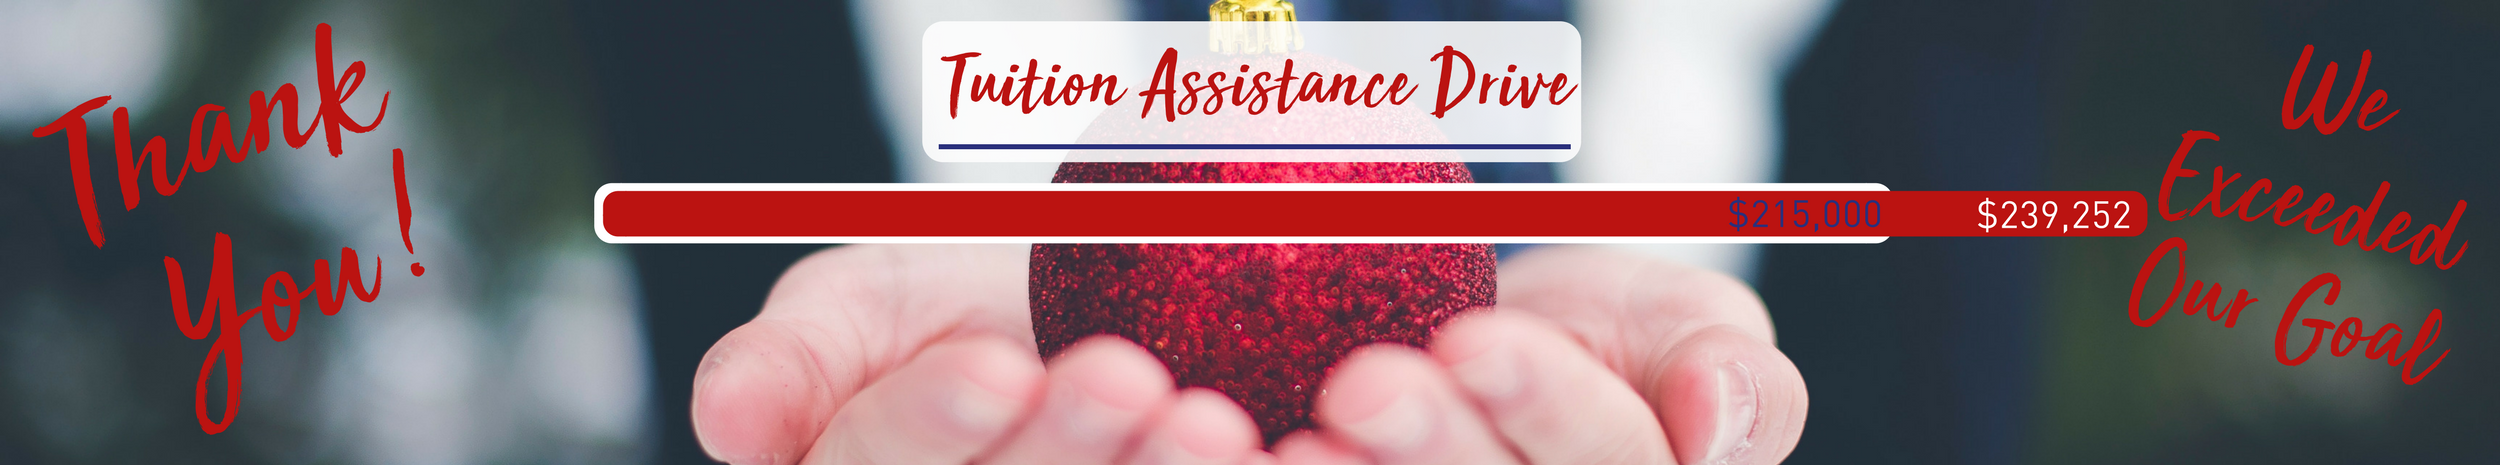 Tuition Assistance Drive